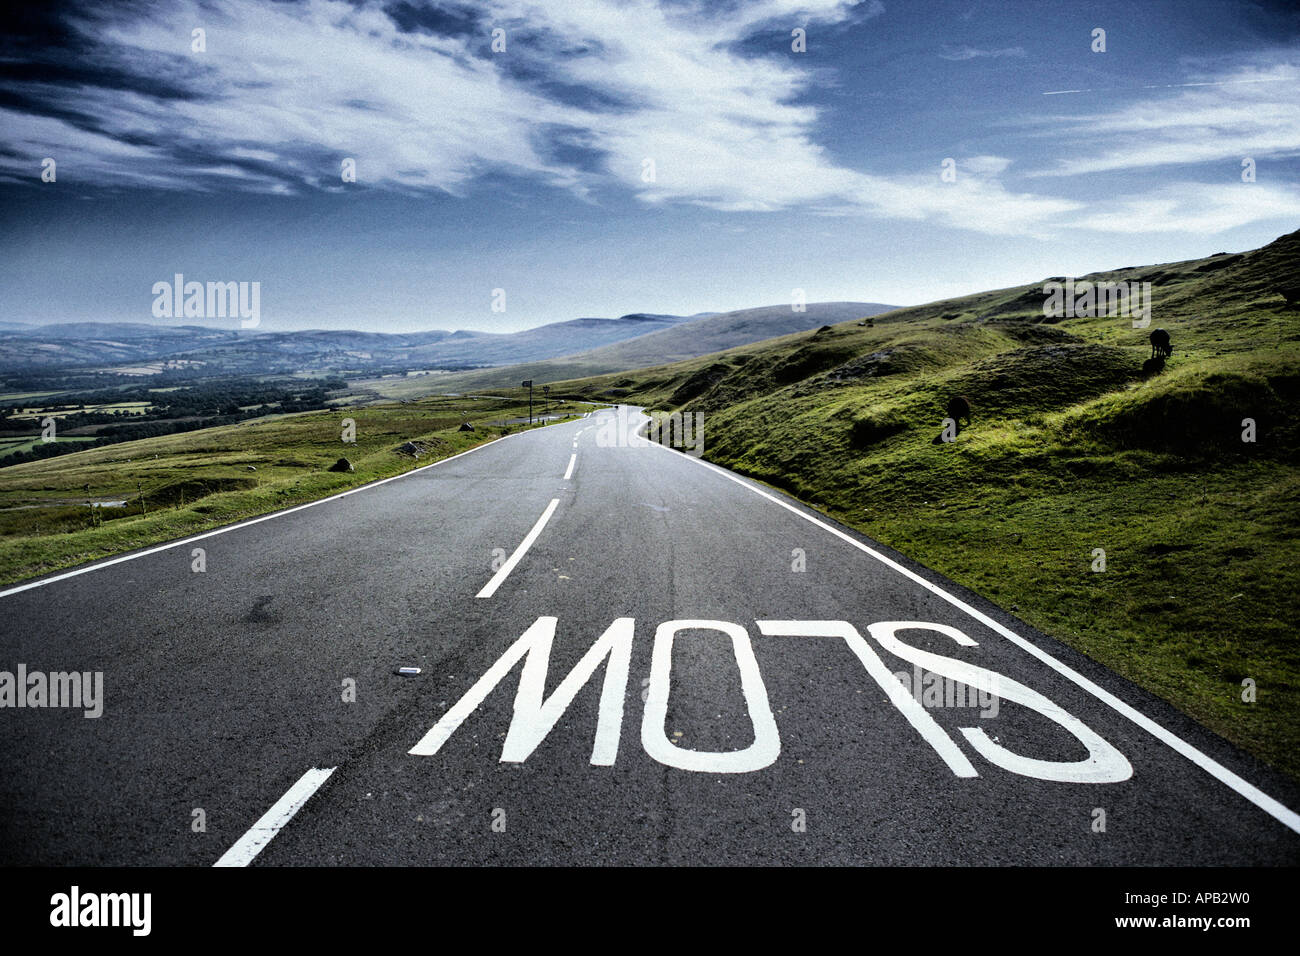 A countryside road depicting the slow instruction - Stock Image